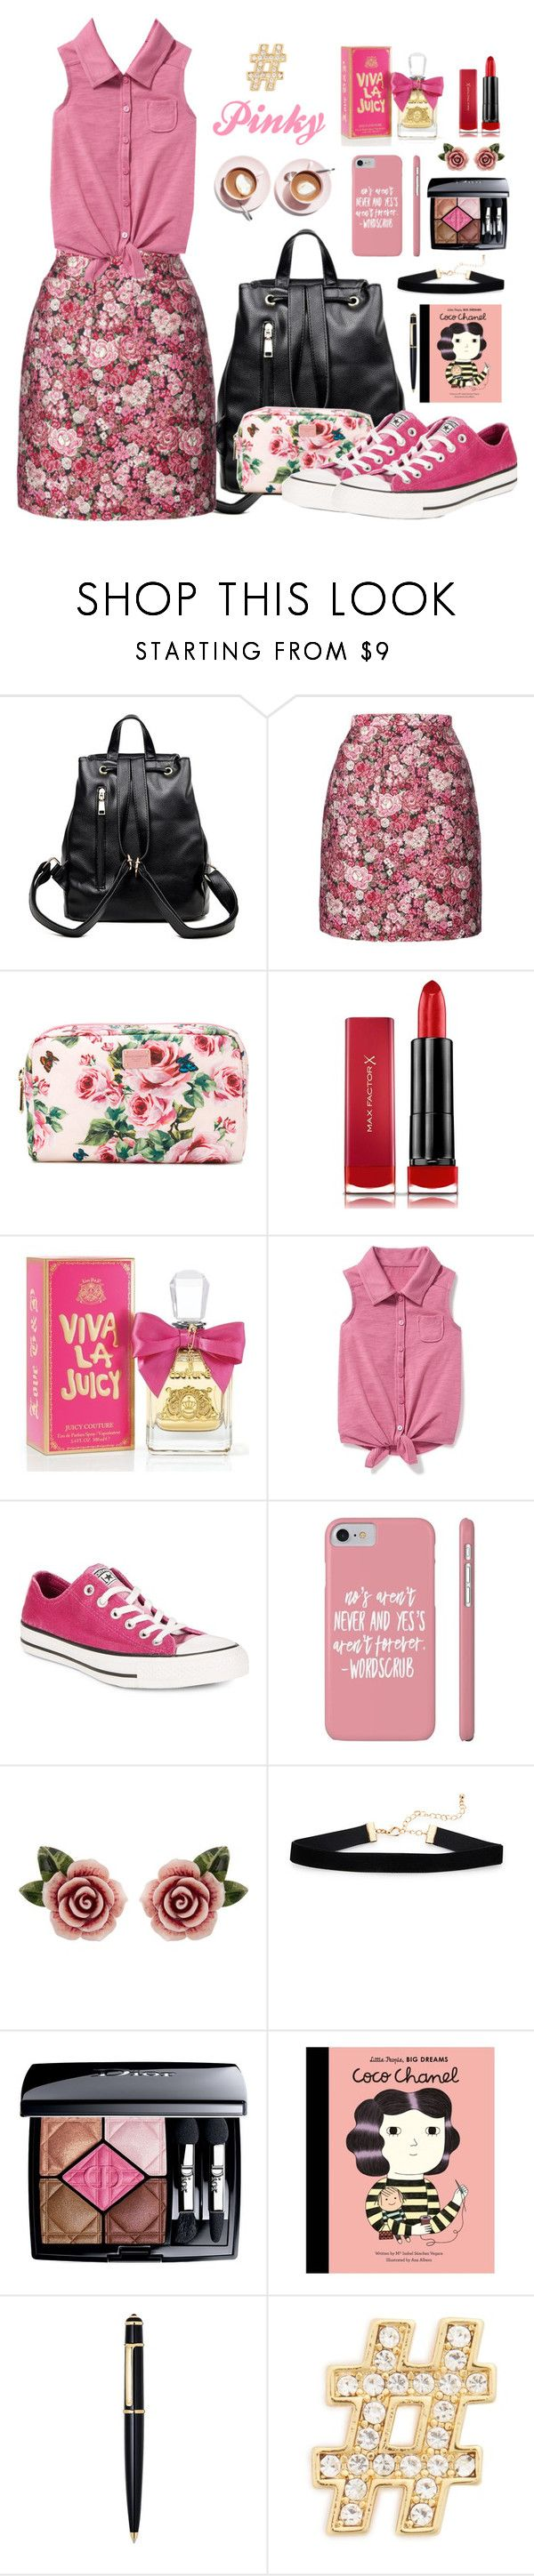 """🍃🌸E.U🌸🍃MyKindOfpink🍃"" by estherupdates ❤ liked on Polyvore featuring ADAM, Dolce&Gabbana, Max Factor, Juicy Couture, Old Navy, Converse, Christian Dior, Quarto Publishing, Cartier and Michael Kors"